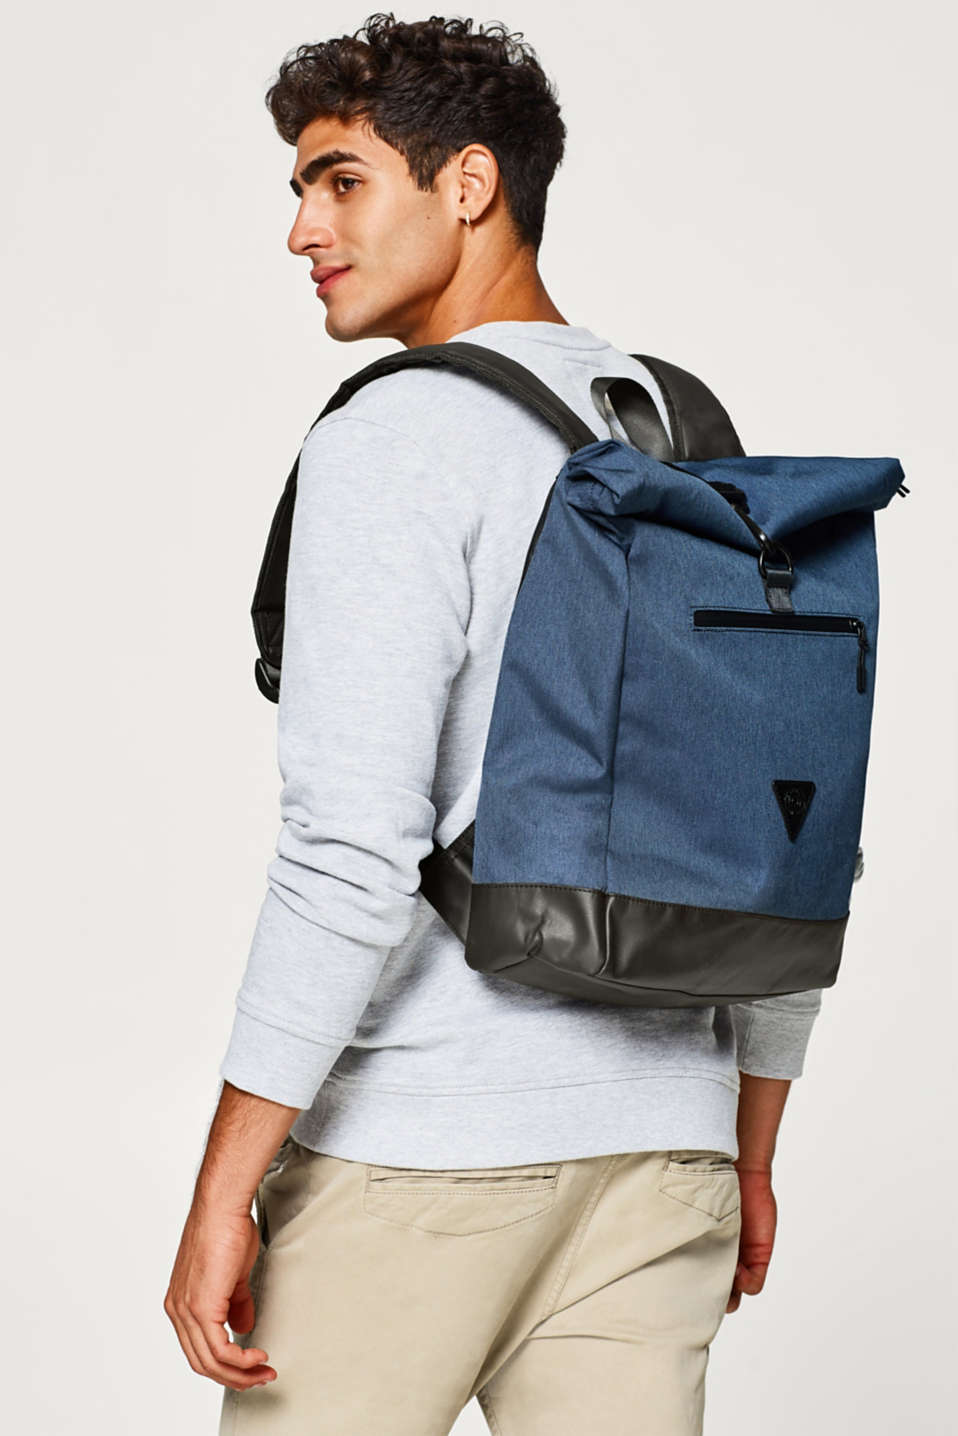 Backpack with a wide range of inner pockets